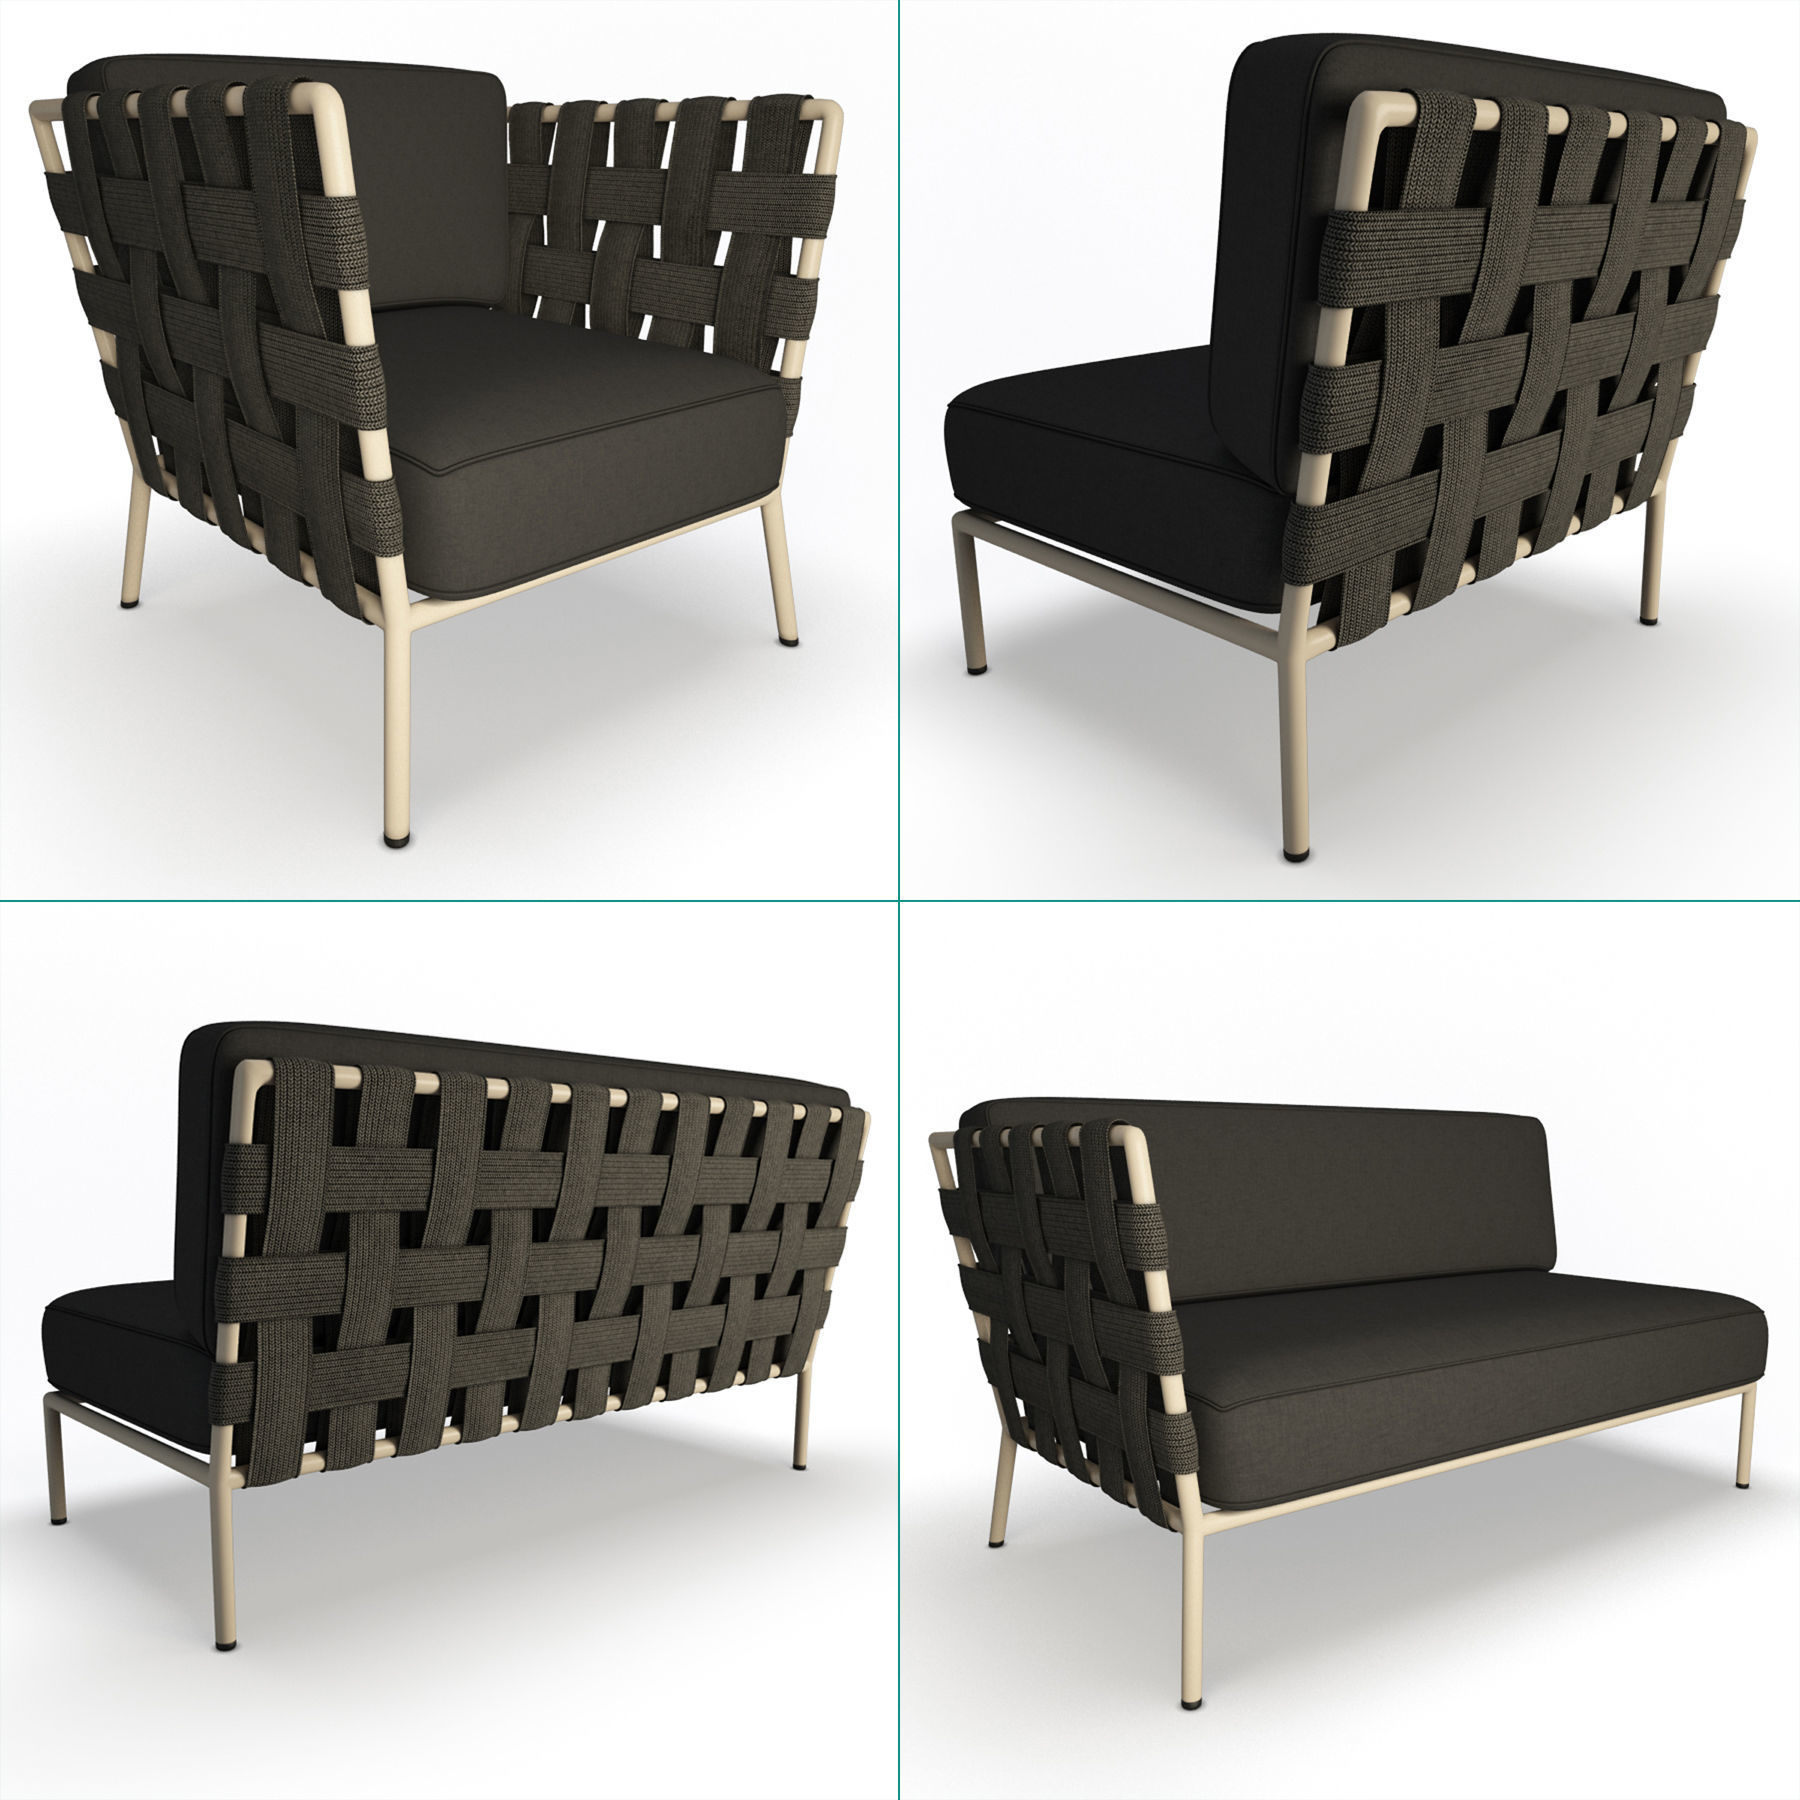 Conic Furniture Collection Cane-Line